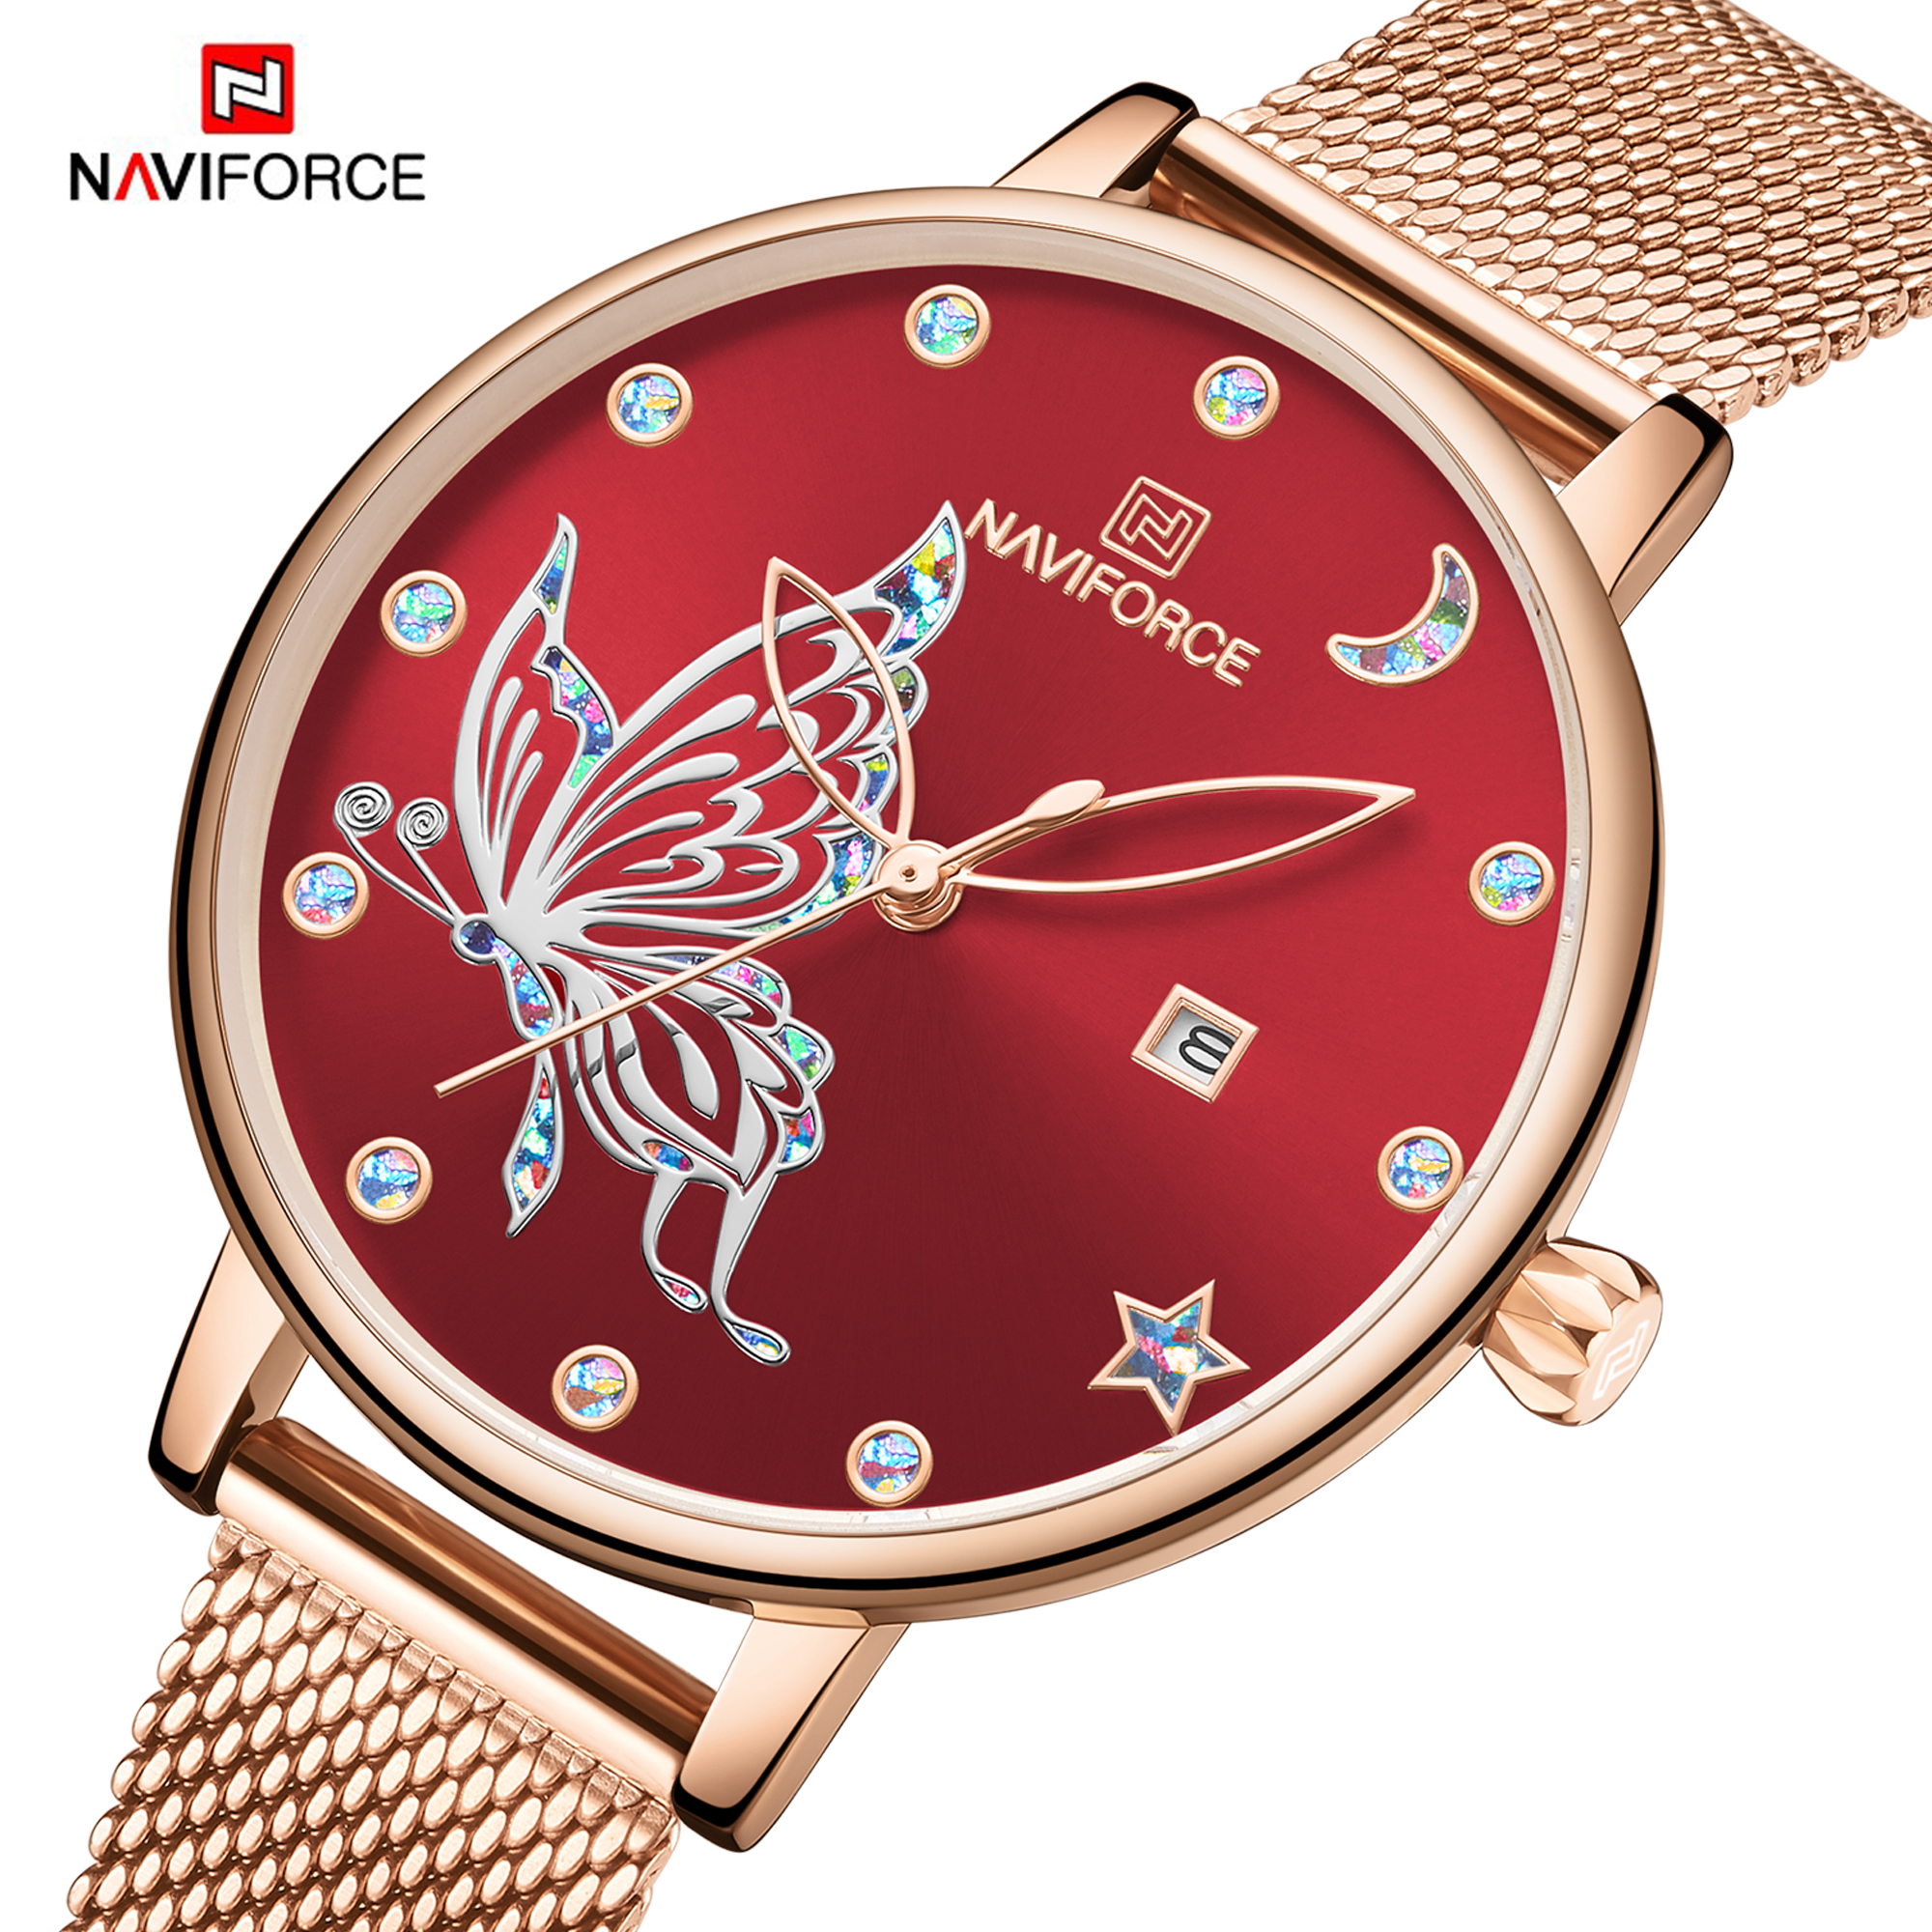 2019 NAVIFORCE Luxury Brand Women Watches Fashion Casual Quartz Ladies wrist watch Steel strap Waterproof Clock Relogio Feminino title=